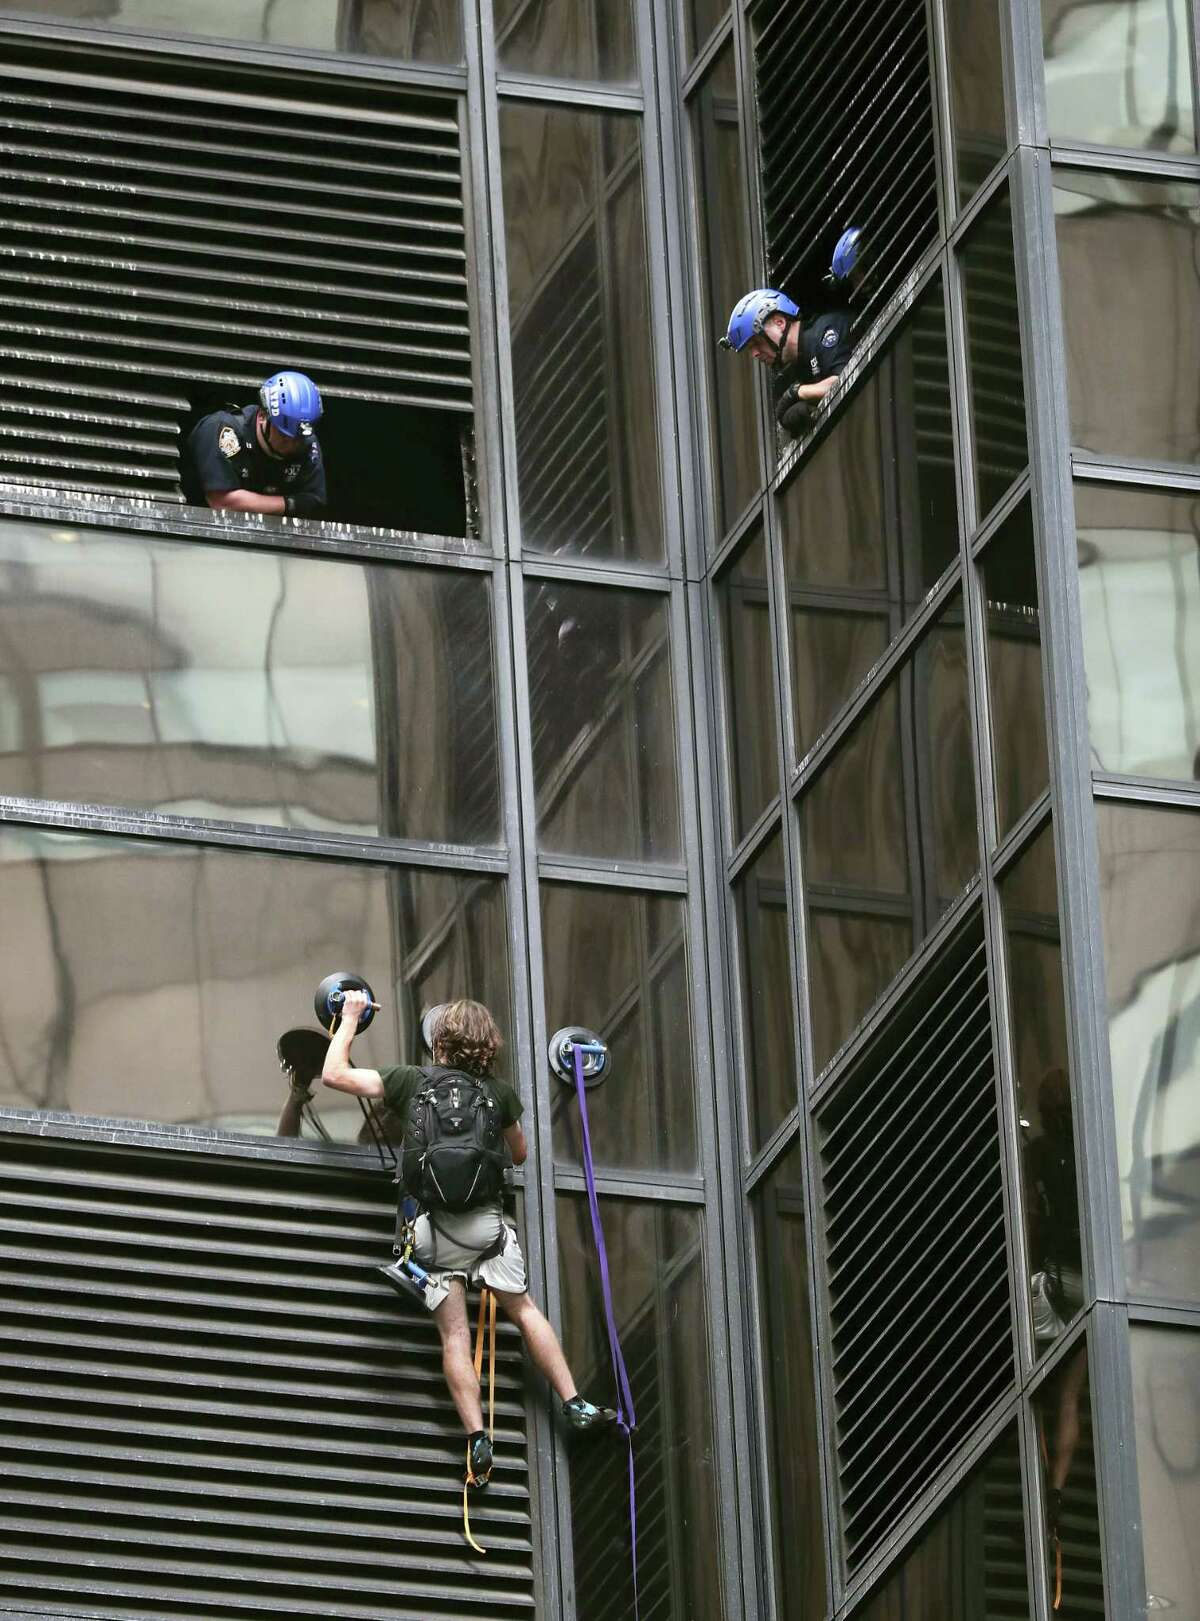 A man scales the all-glass facade of Trump Tower on Wednesday in New York City. A police spokeswoman says officers responded to Donald Trump's namesake skyscraper on Fifth Avenue in Manhattan.